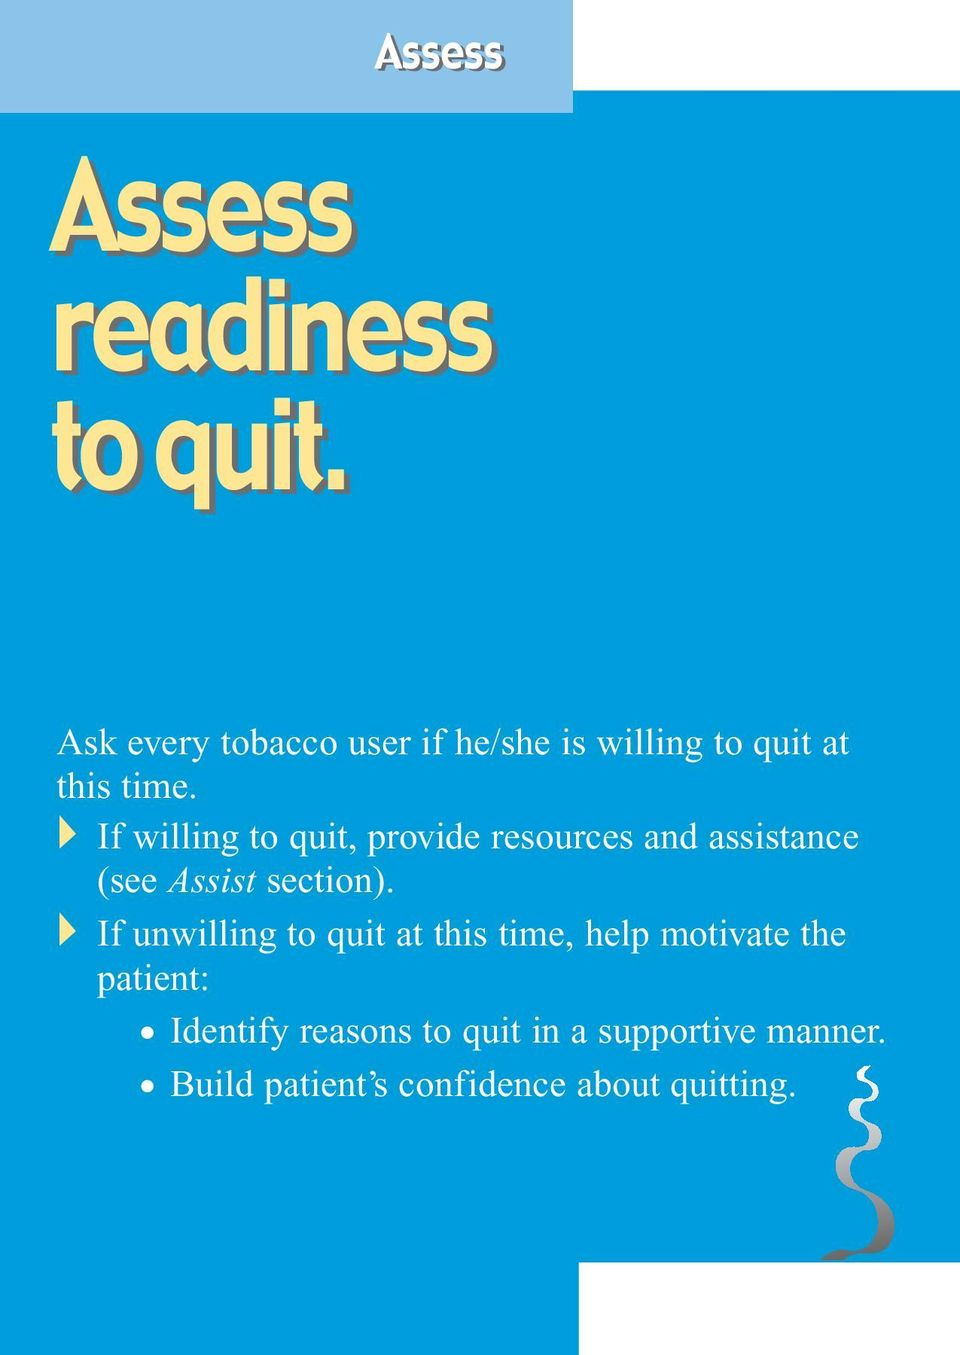 If willing to quit, provide resources and assistance (see Assist section).